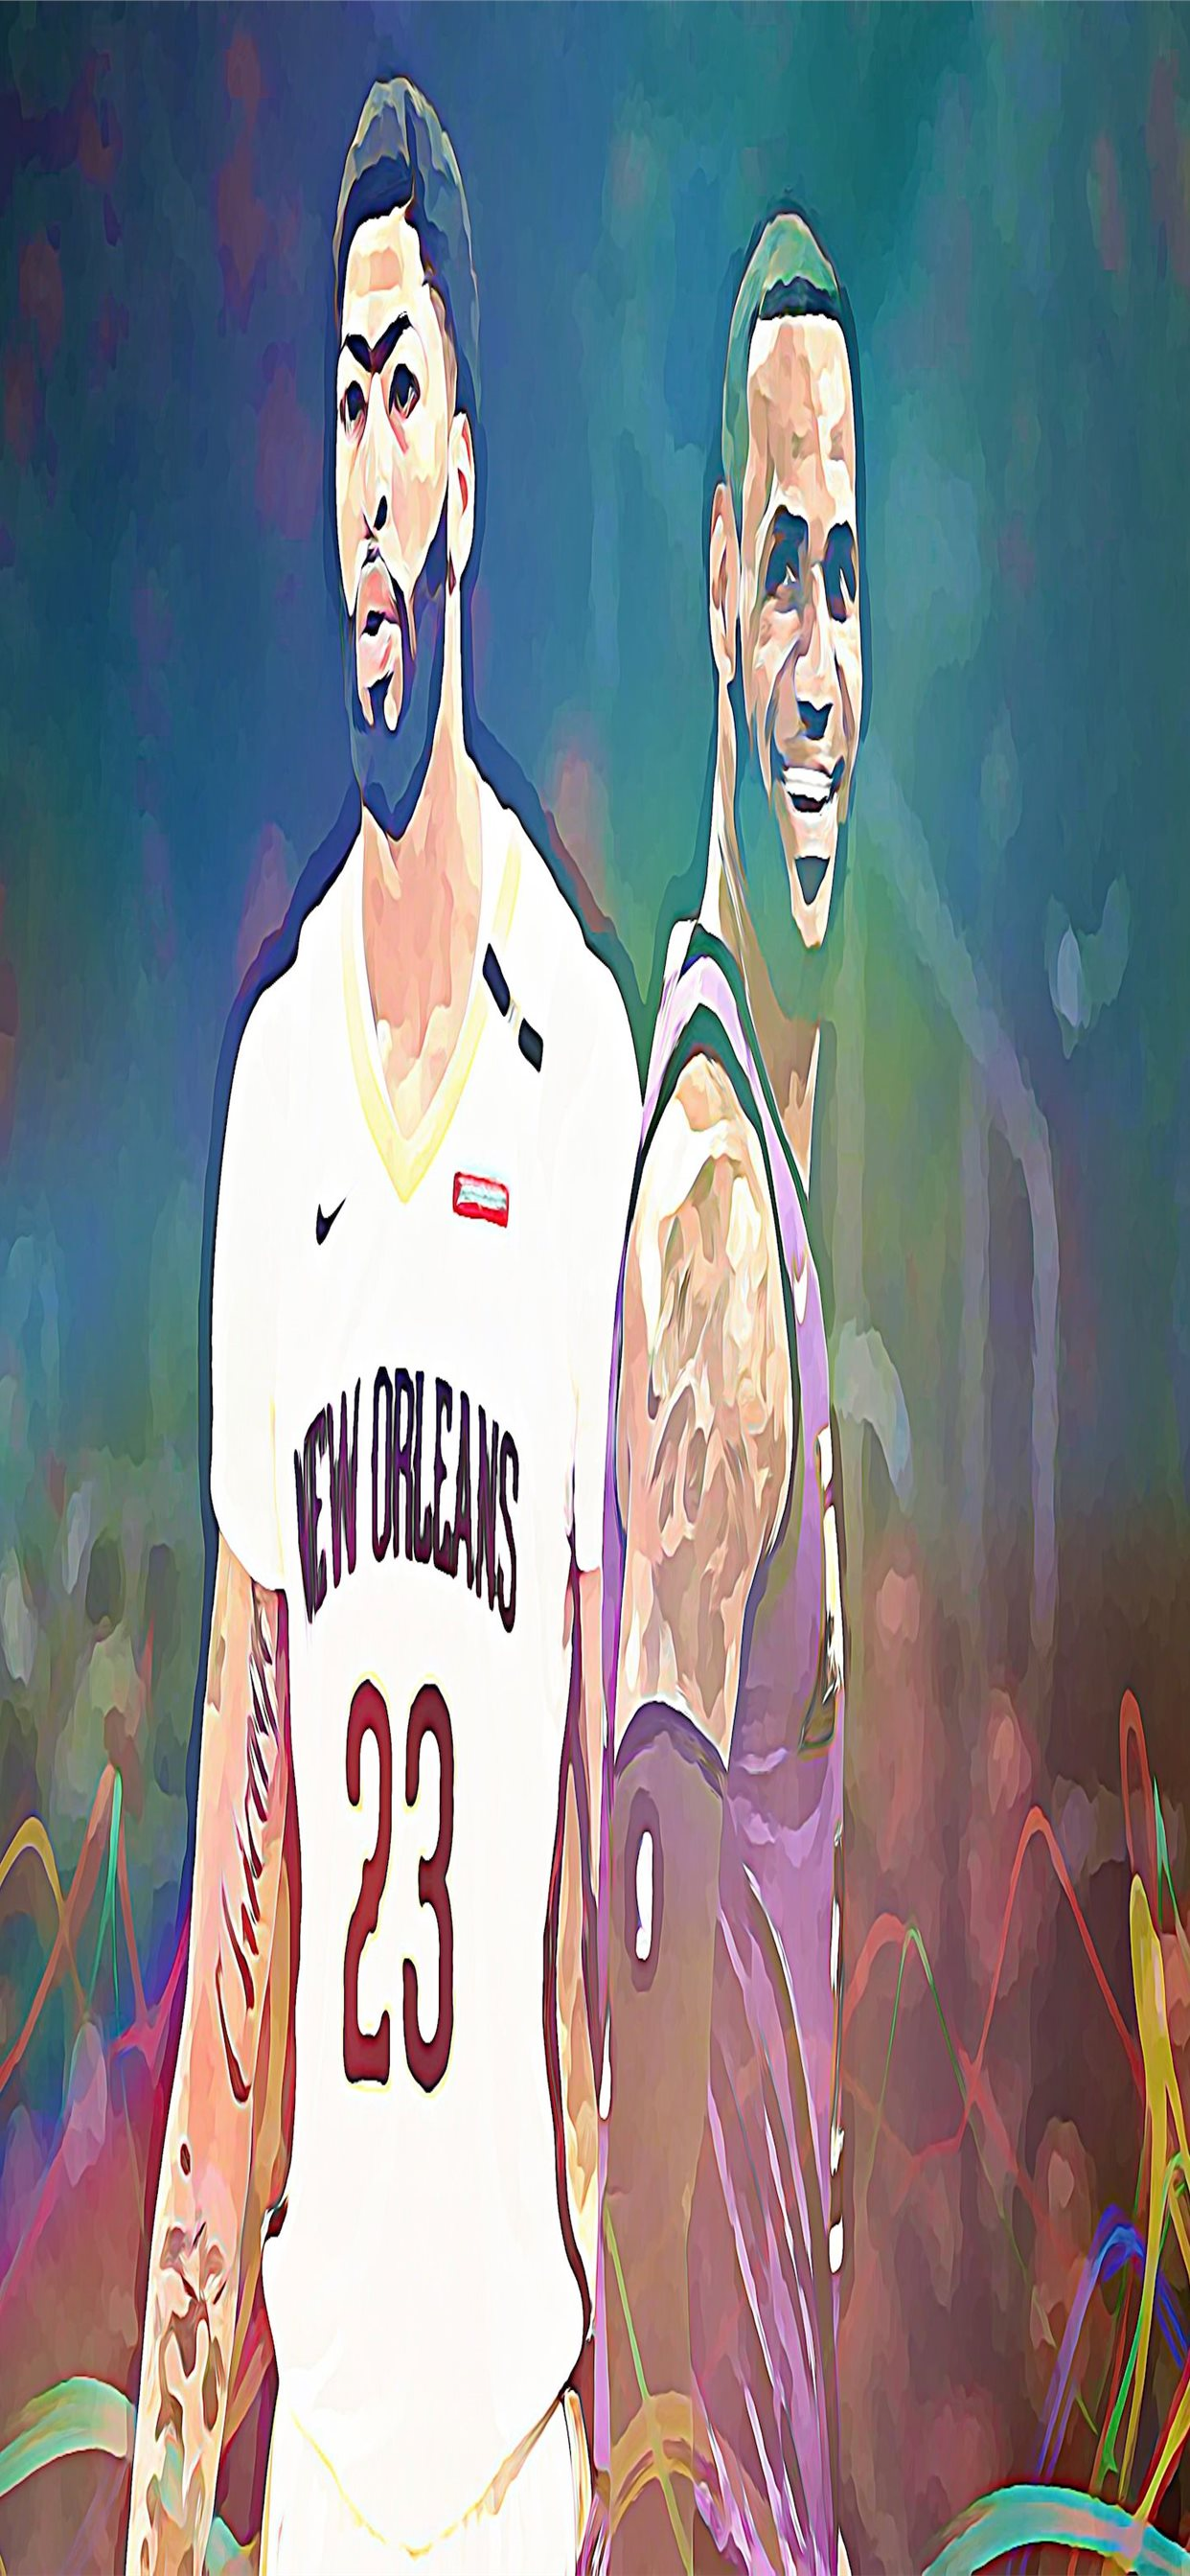 View|21+ Anthony Davis Wallpaper Images - Sports Official